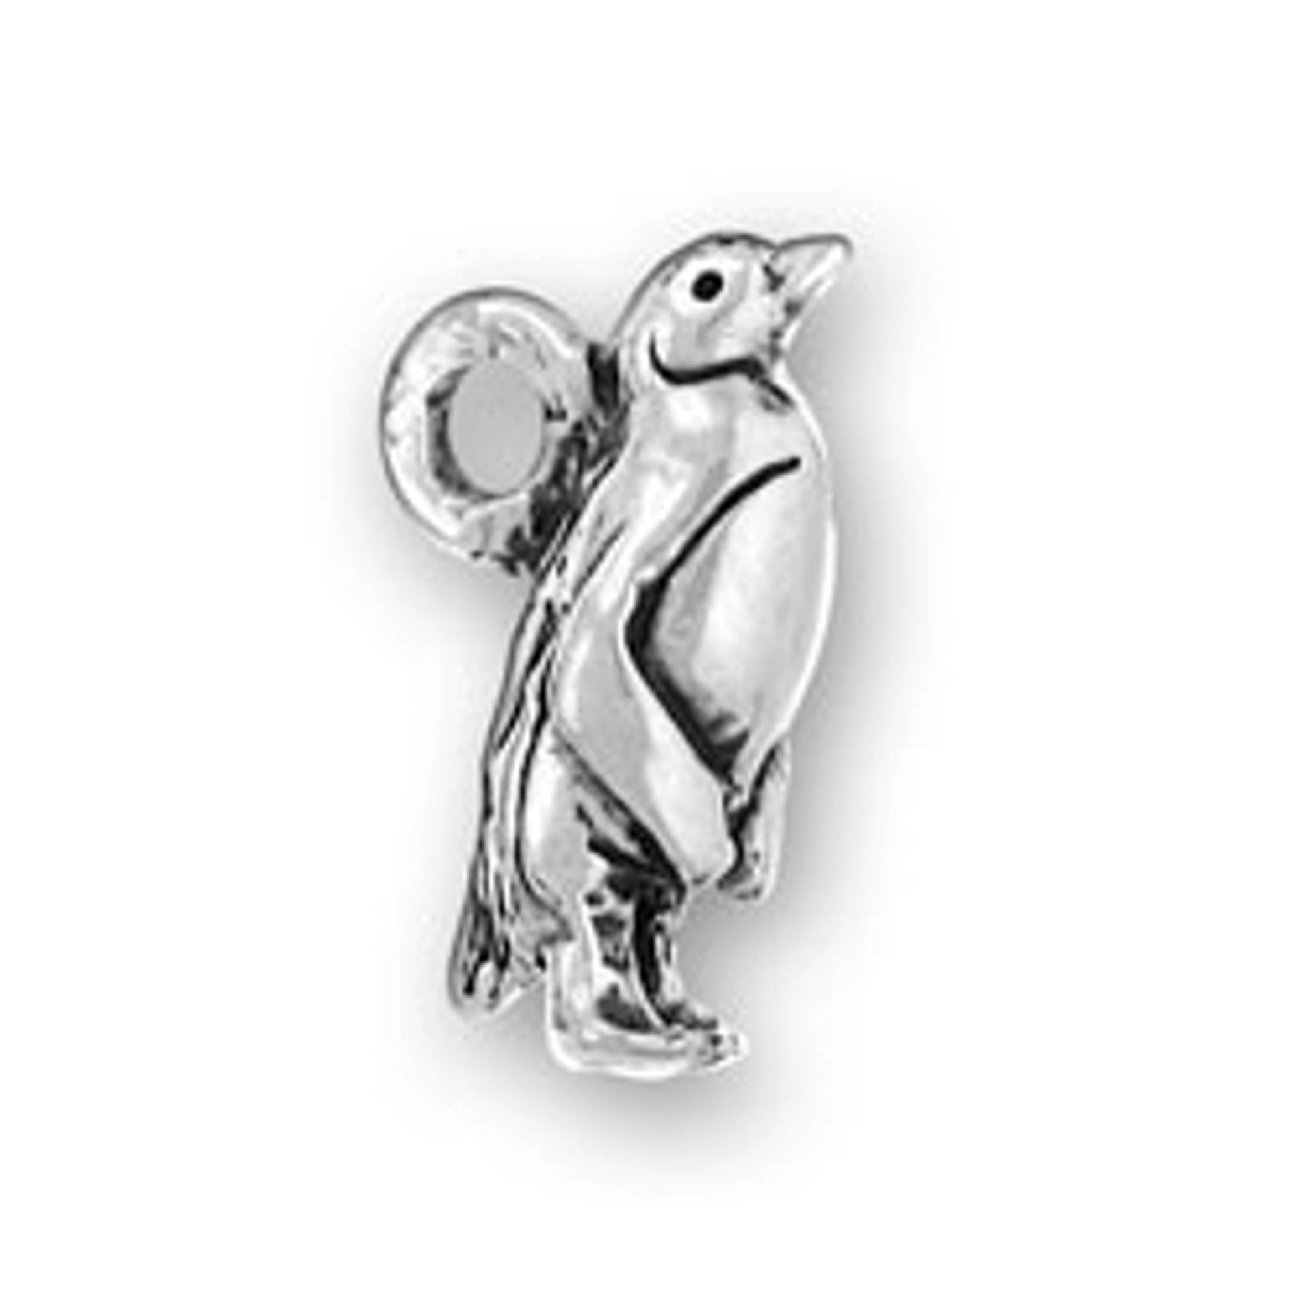 Sterling Silver 7 4.5mm Charm Bracelet With Attached 3D Penguin Bird Charm